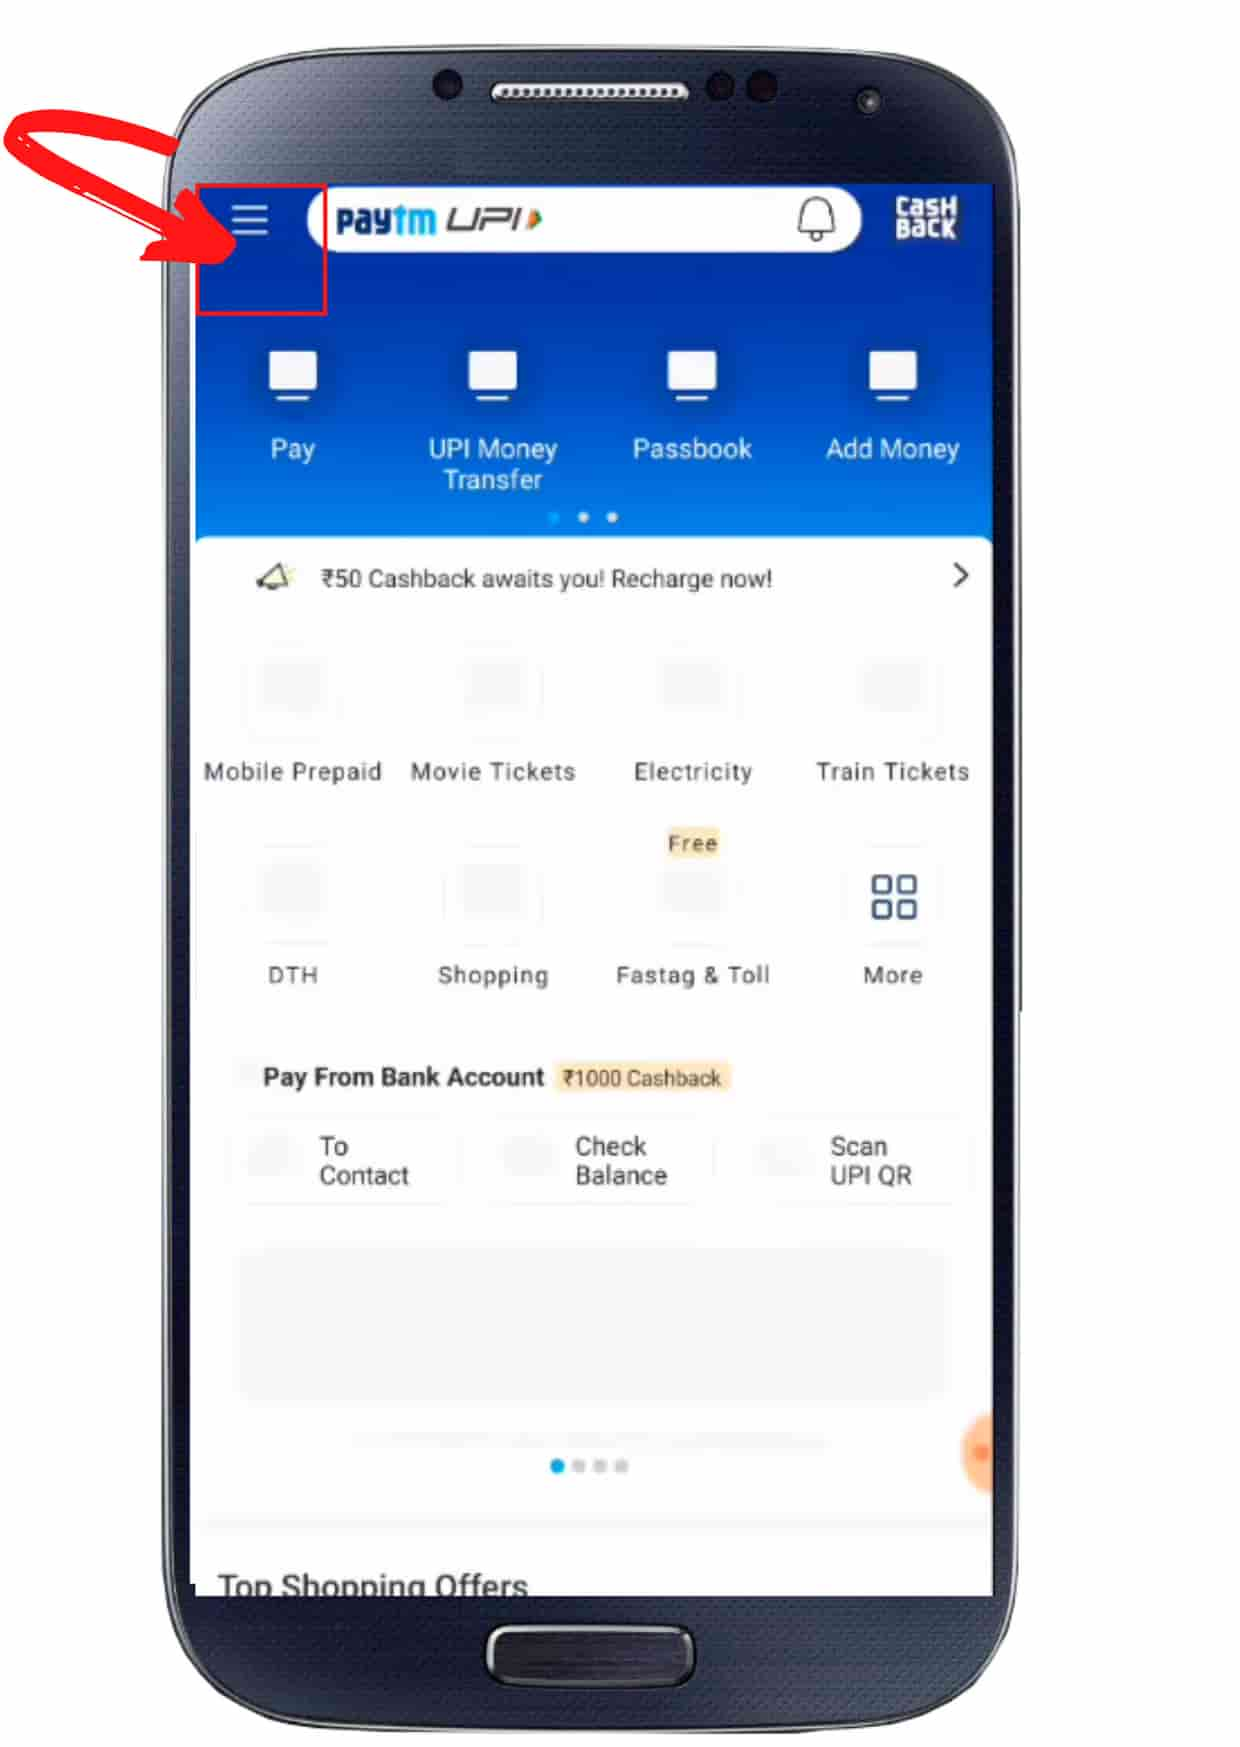 How to delte paytm step 1